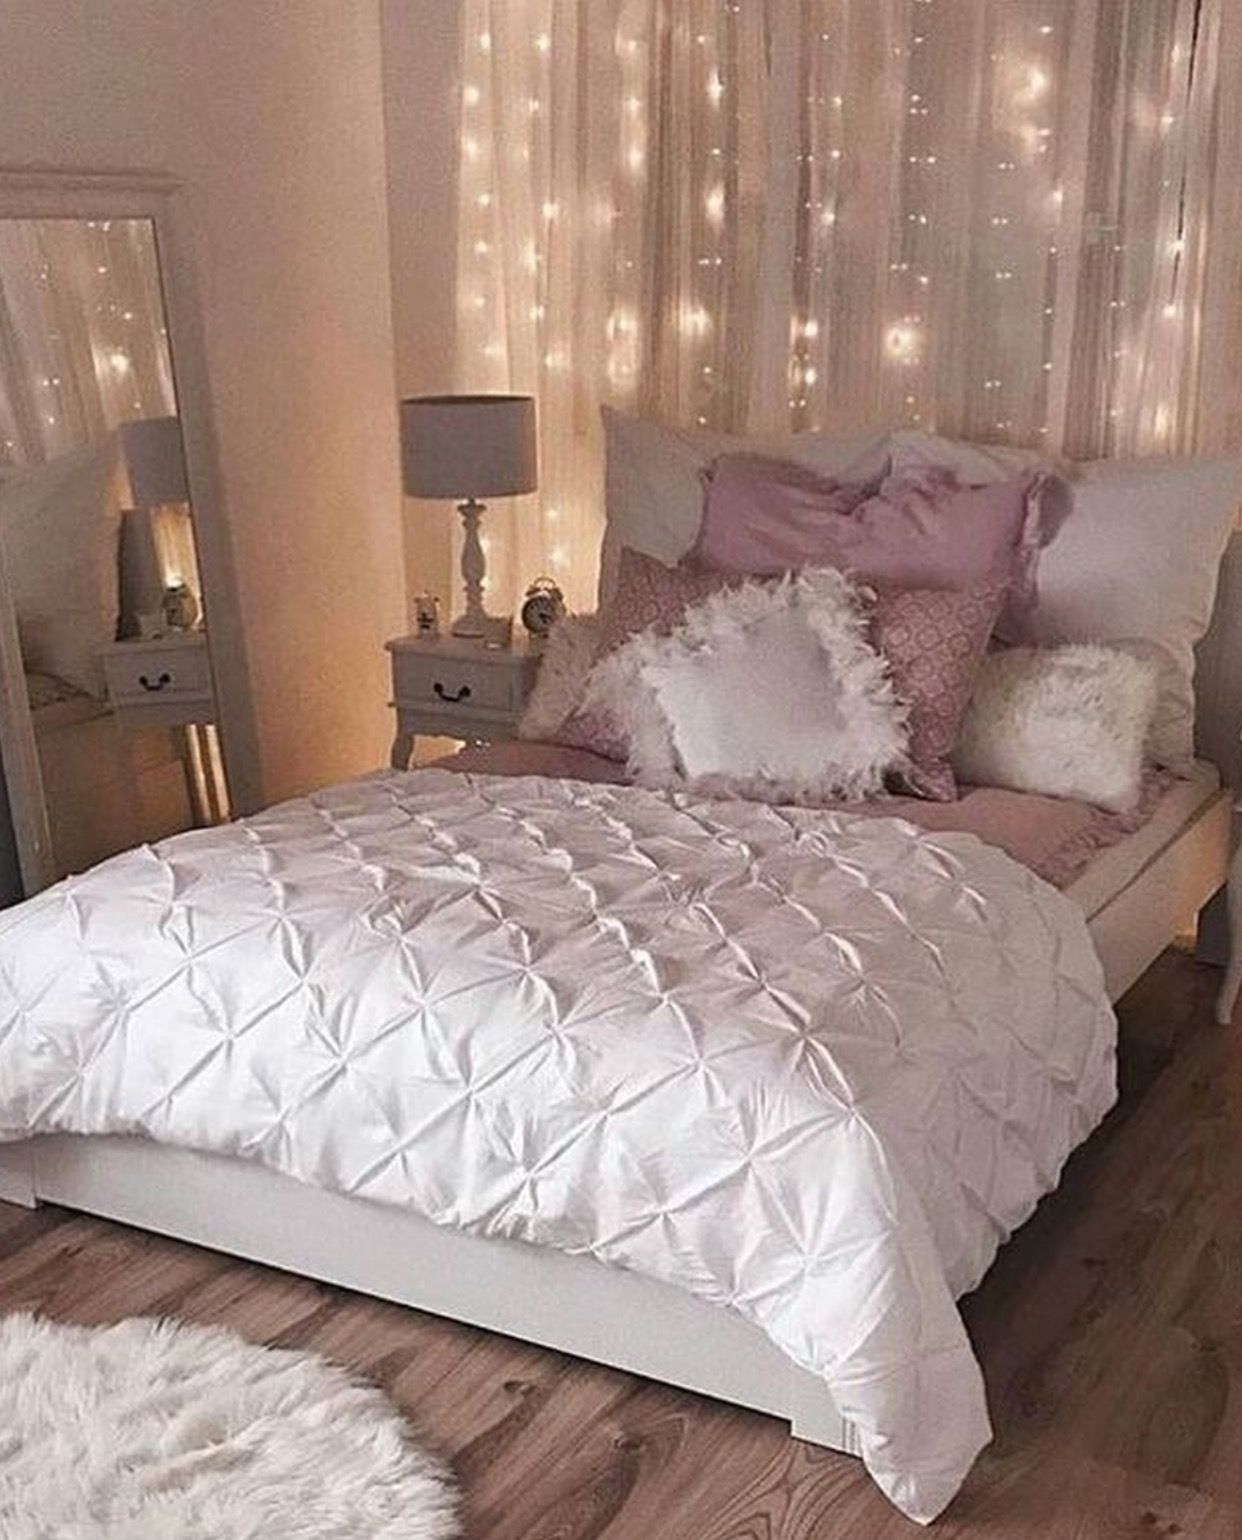 curtains and lights minus pink | Sophie\'s Board | Pinterest ...